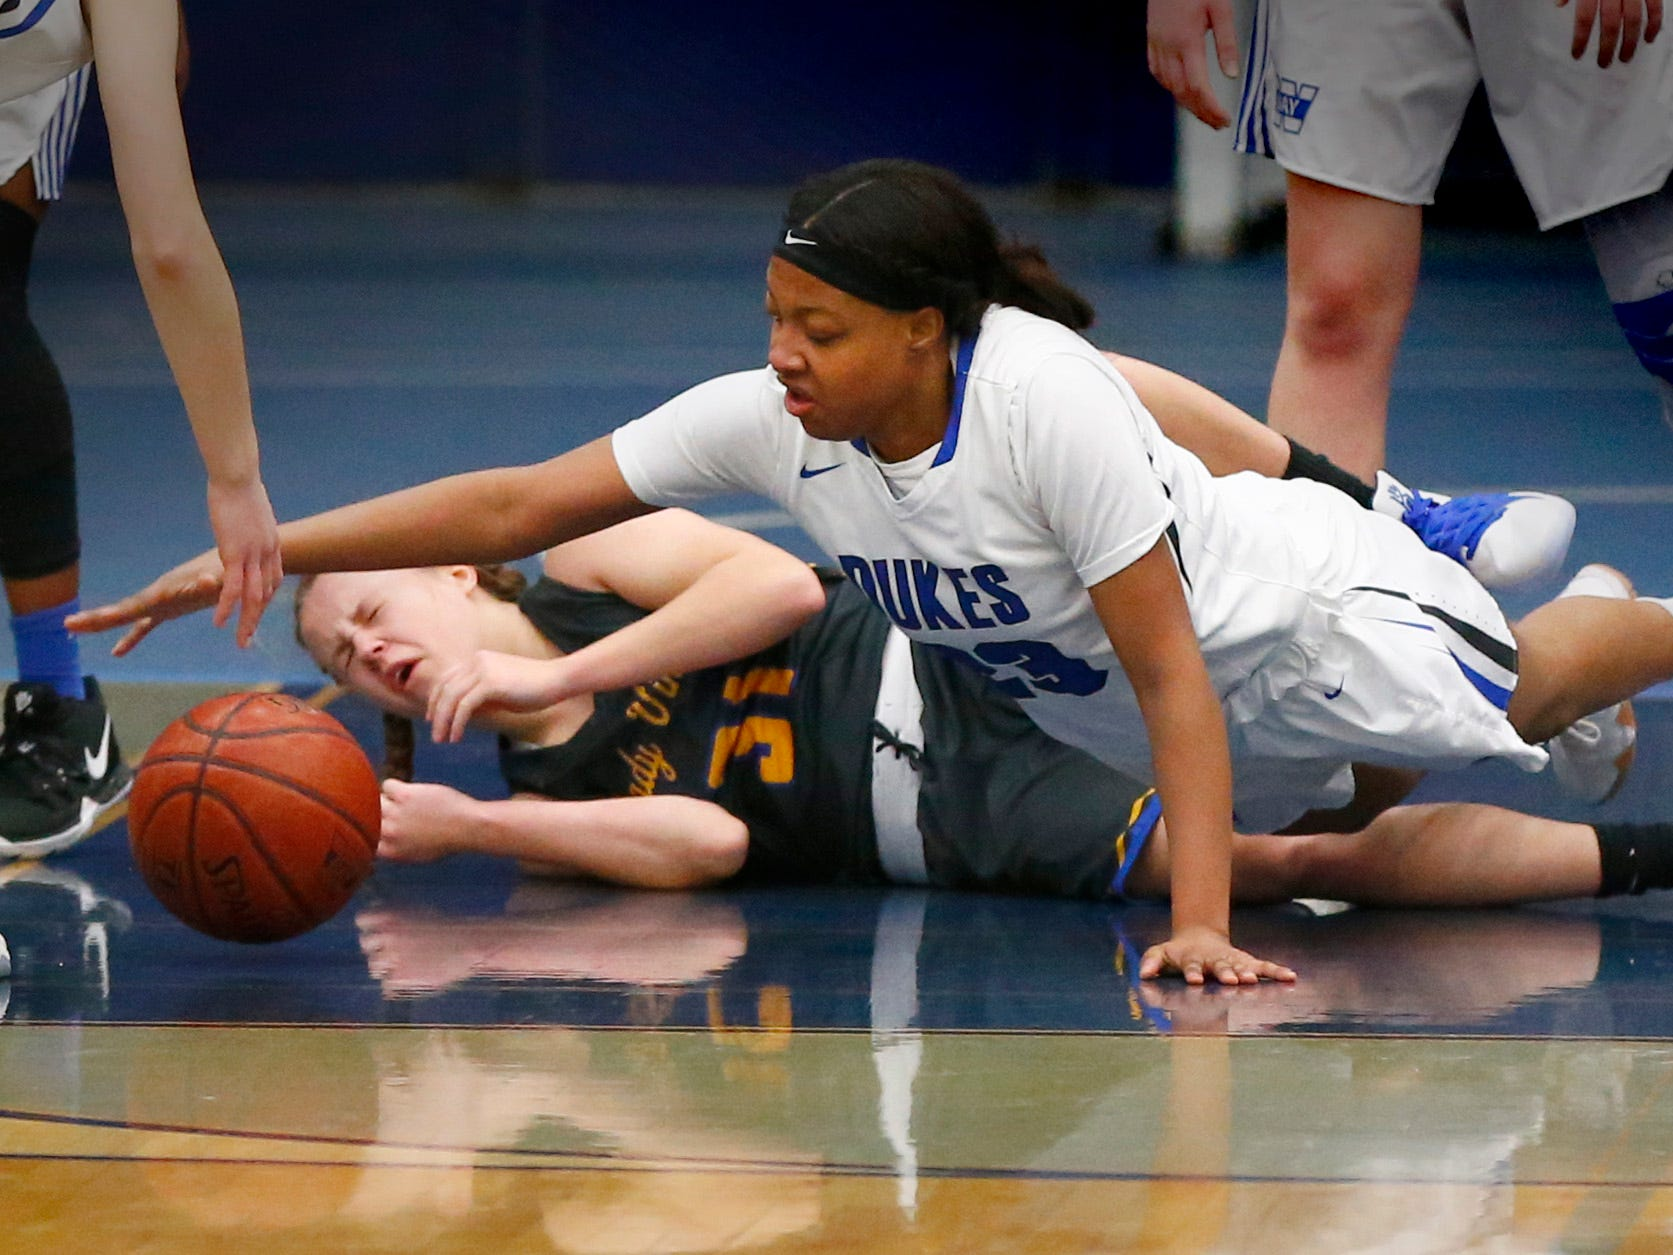 Whitefish Bay's Emeria McPherson stretches over New Berlin West's Makenna Huguet for a loose ball at Whitefish Bay on Jan. 2.